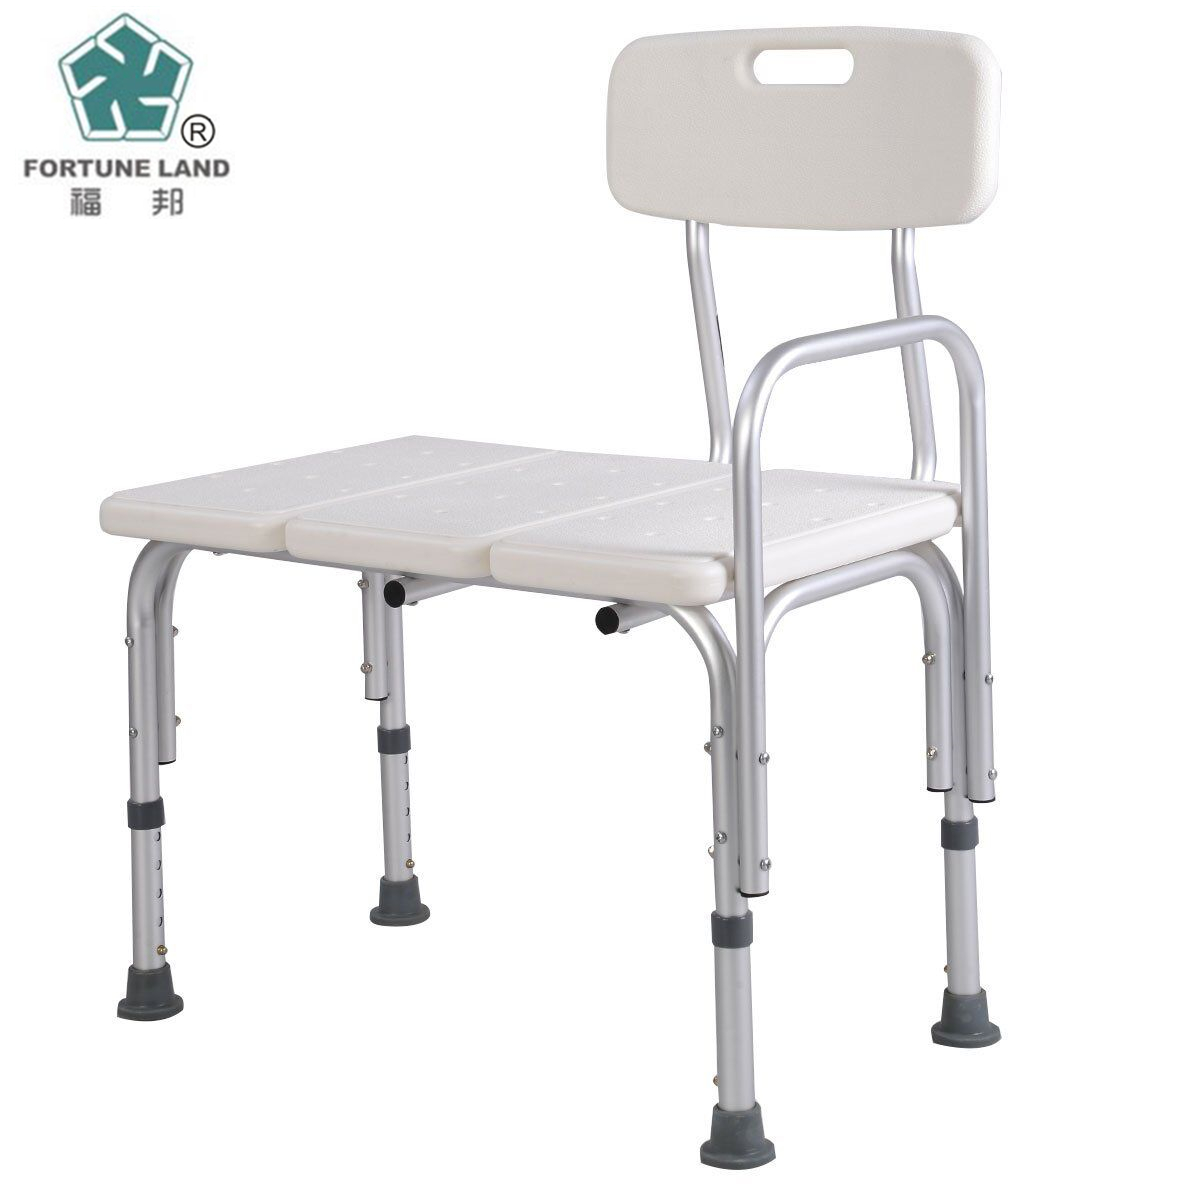 Low price One-piece Bath Tub Aluminium Alloy Adjustable Shower Chair with Removable Back